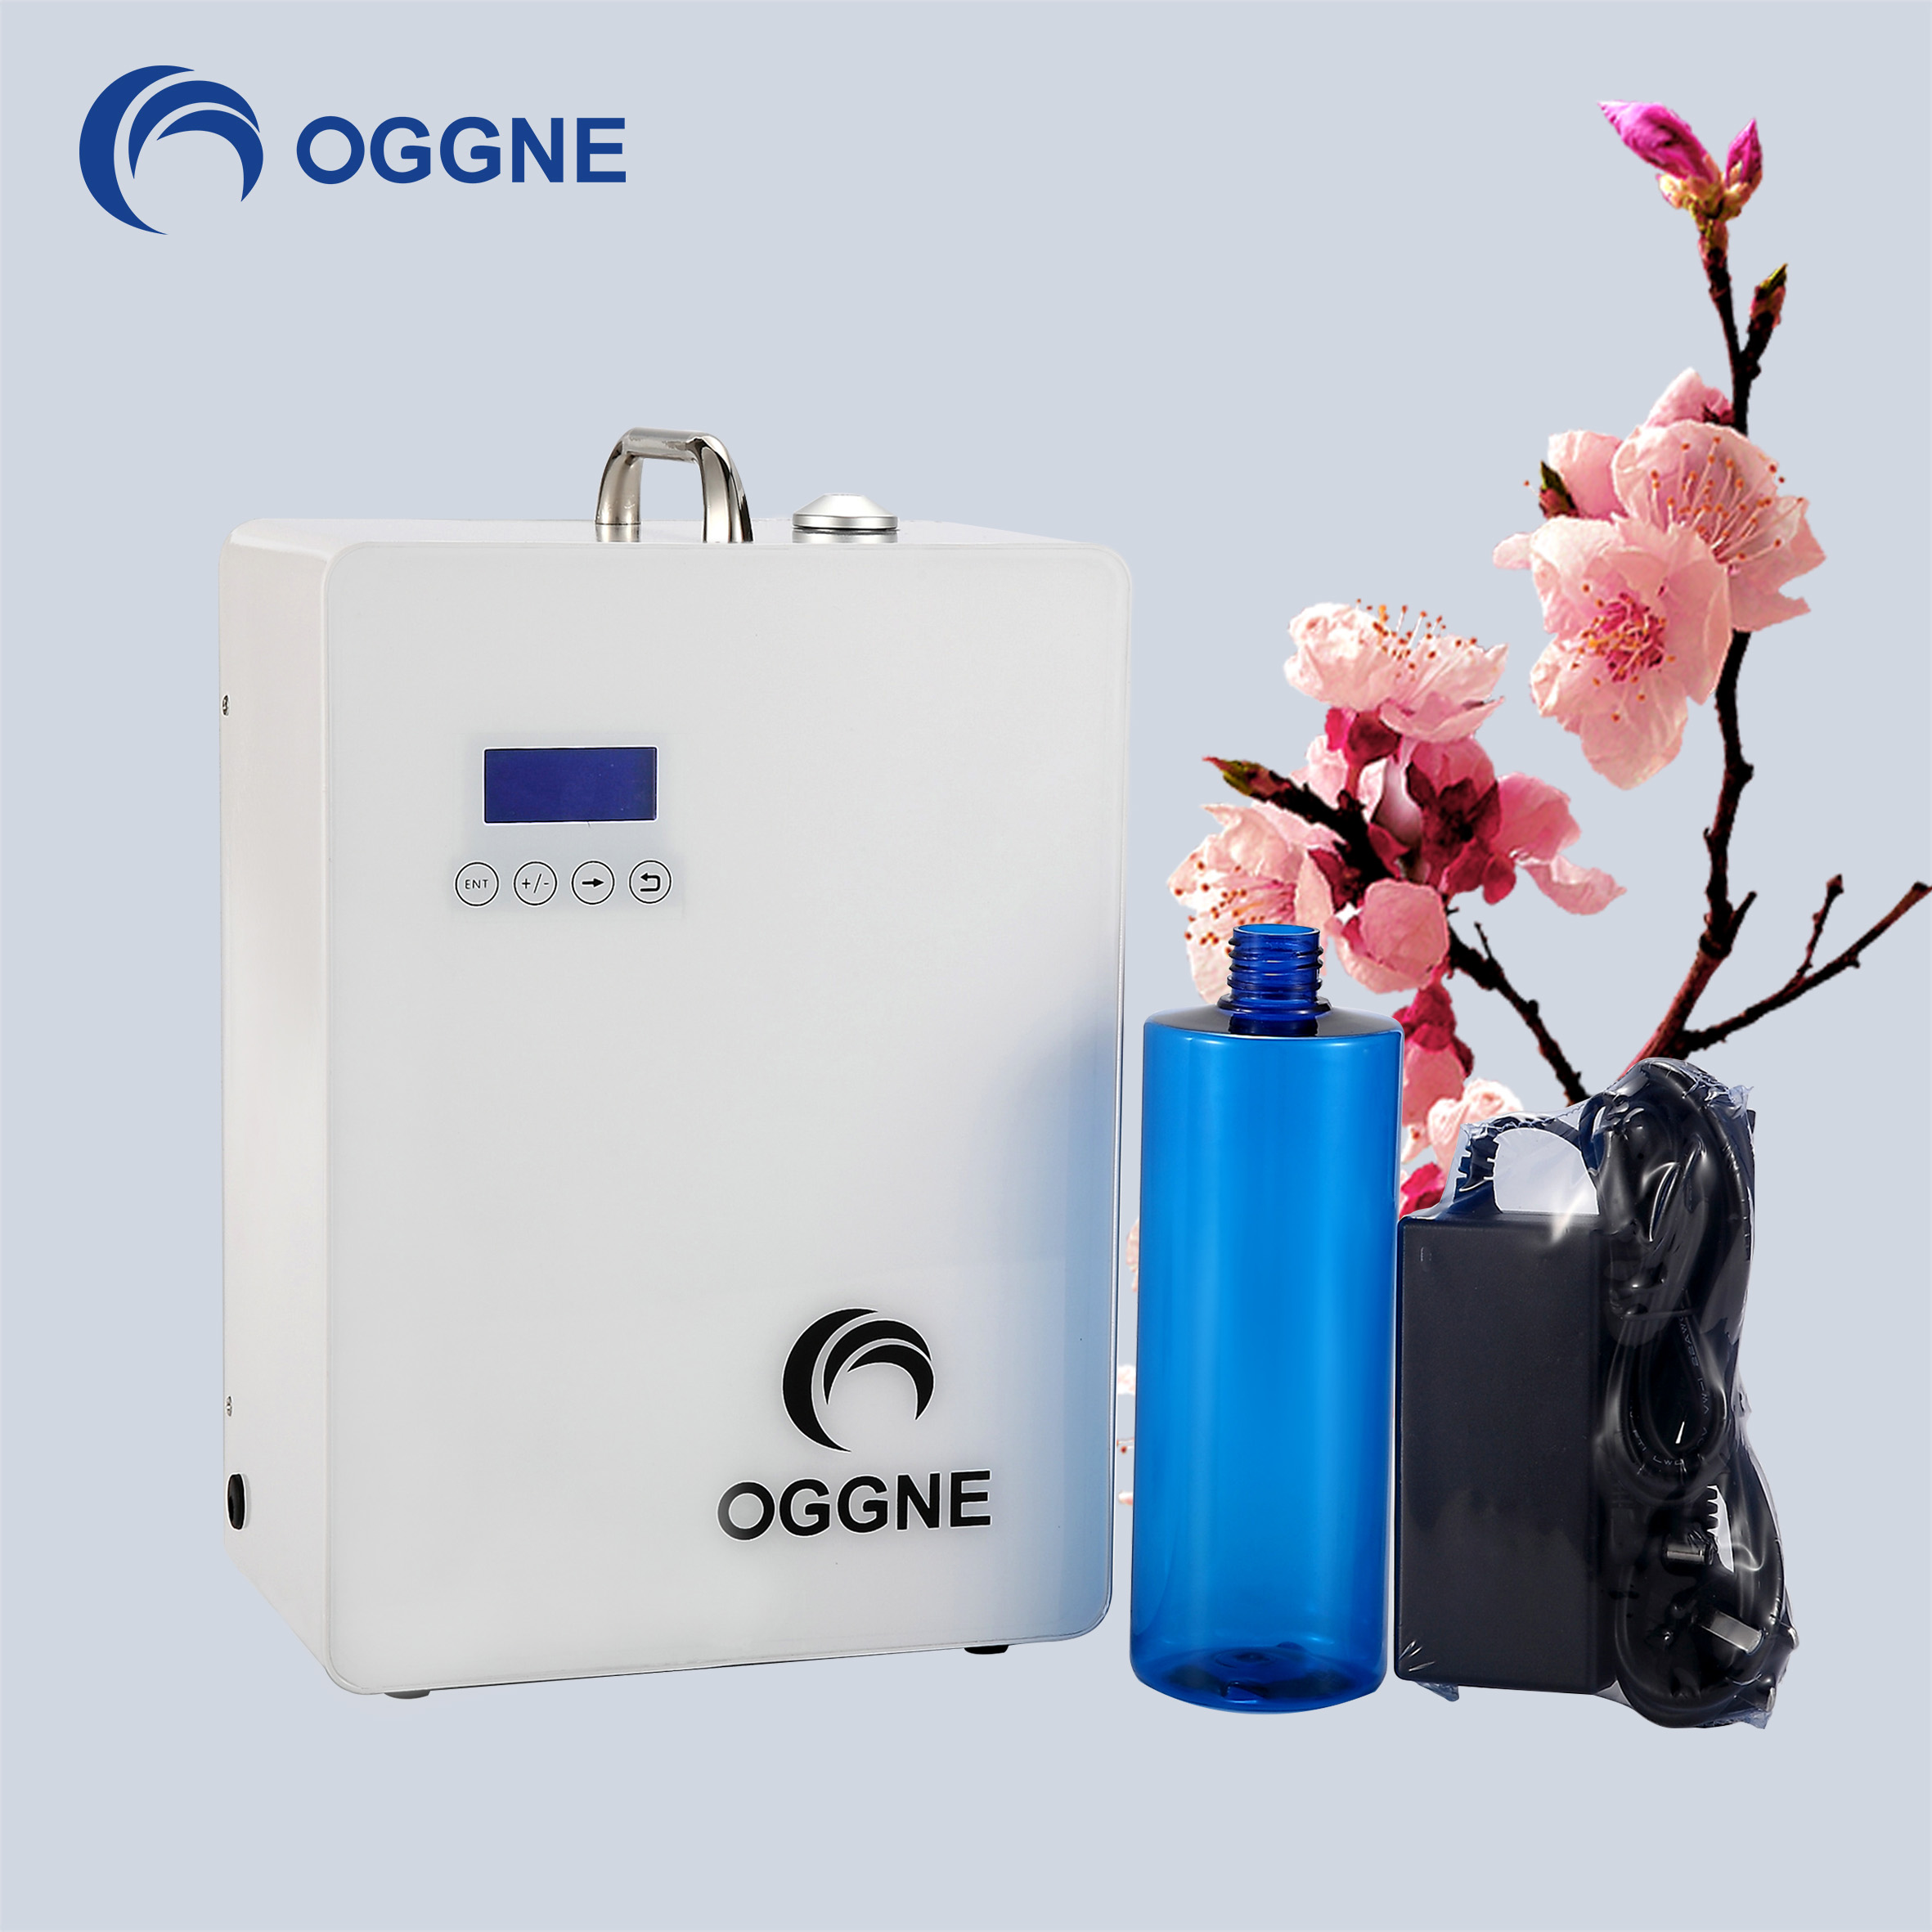 stand-alone commercial area scent diffusers electric aroma diffusers